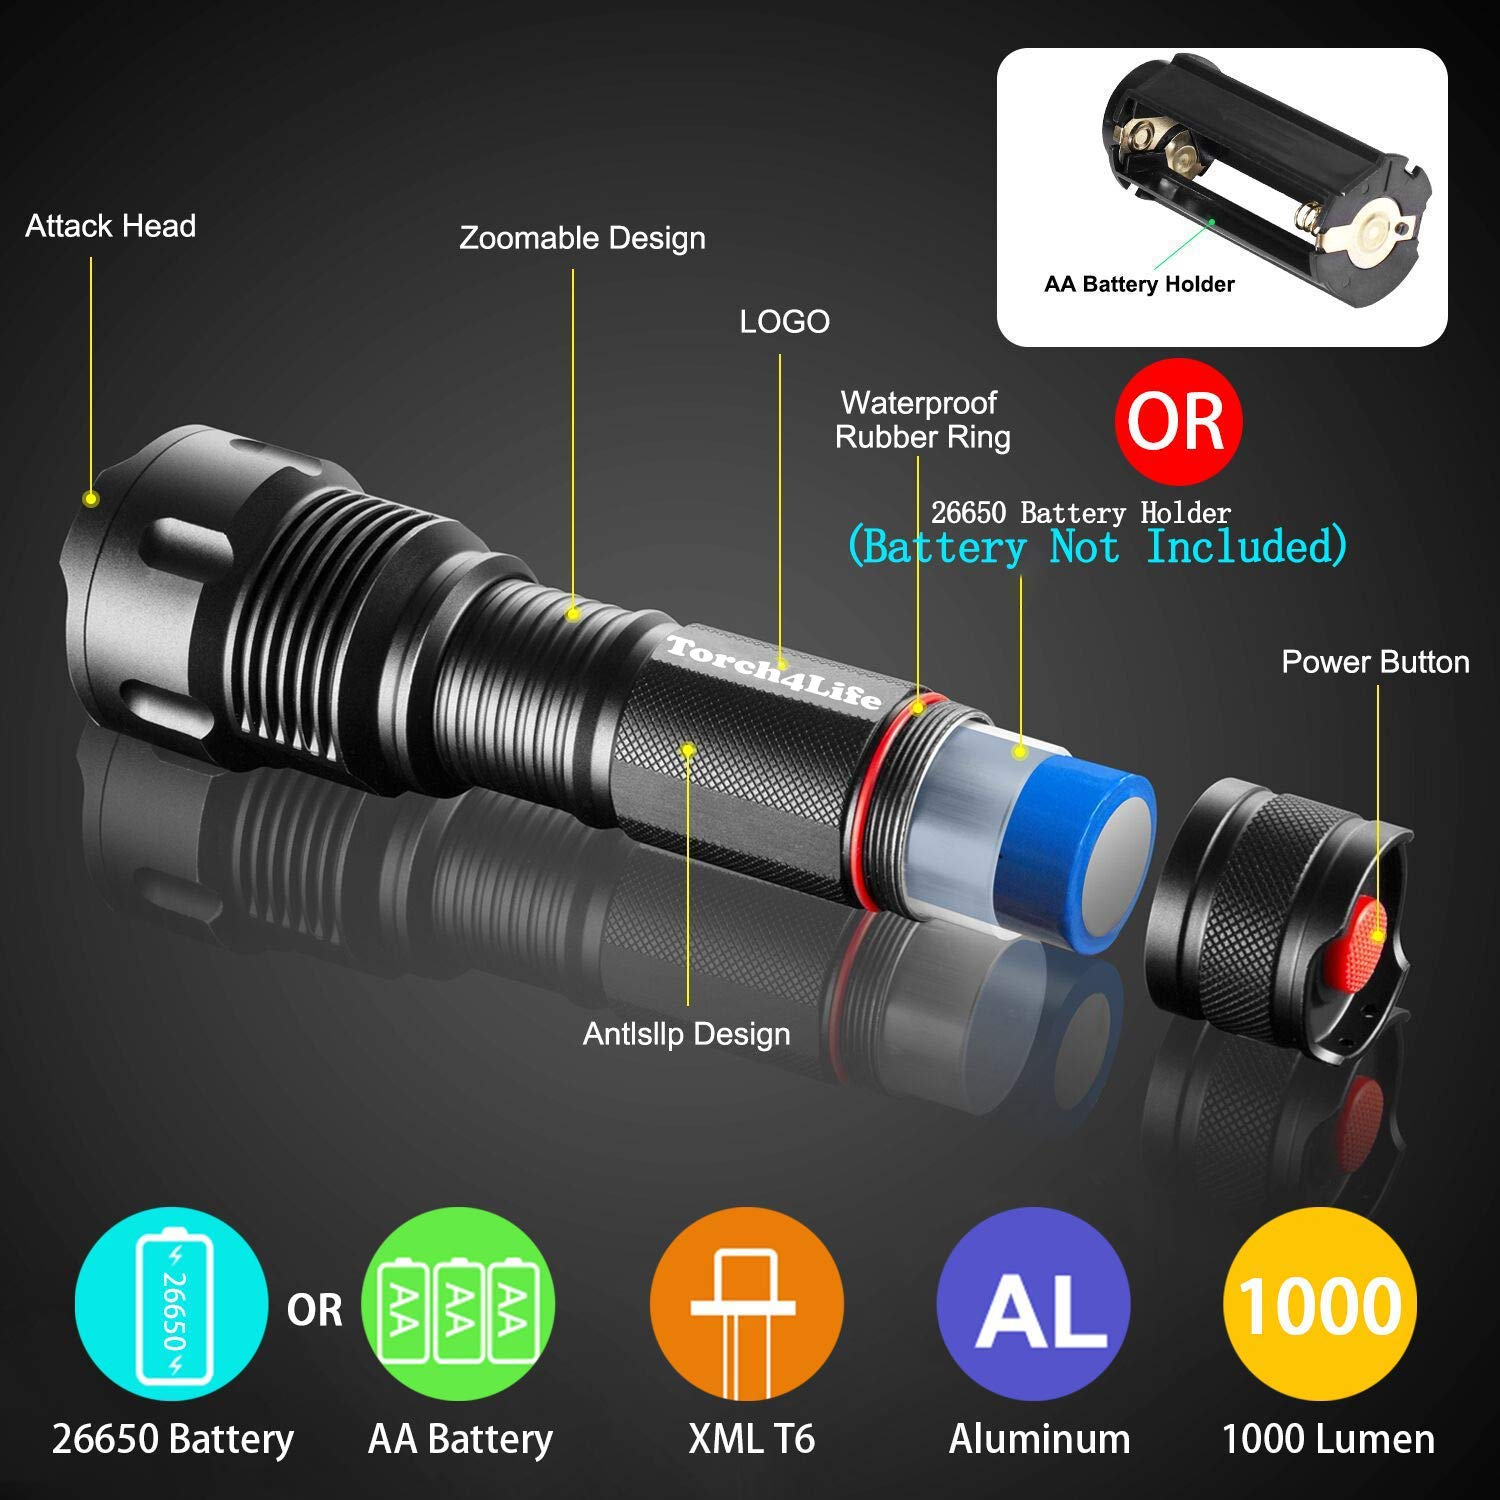 Unbreakable and Water Resistant Torch4Life -Tactical Military Aluminium Torch LED Flashlight by Brand of Wolves- Super Bright Powerful Lumen Adjustable 3 Zoom Mode Focus Pointer- 1 yr Warranty